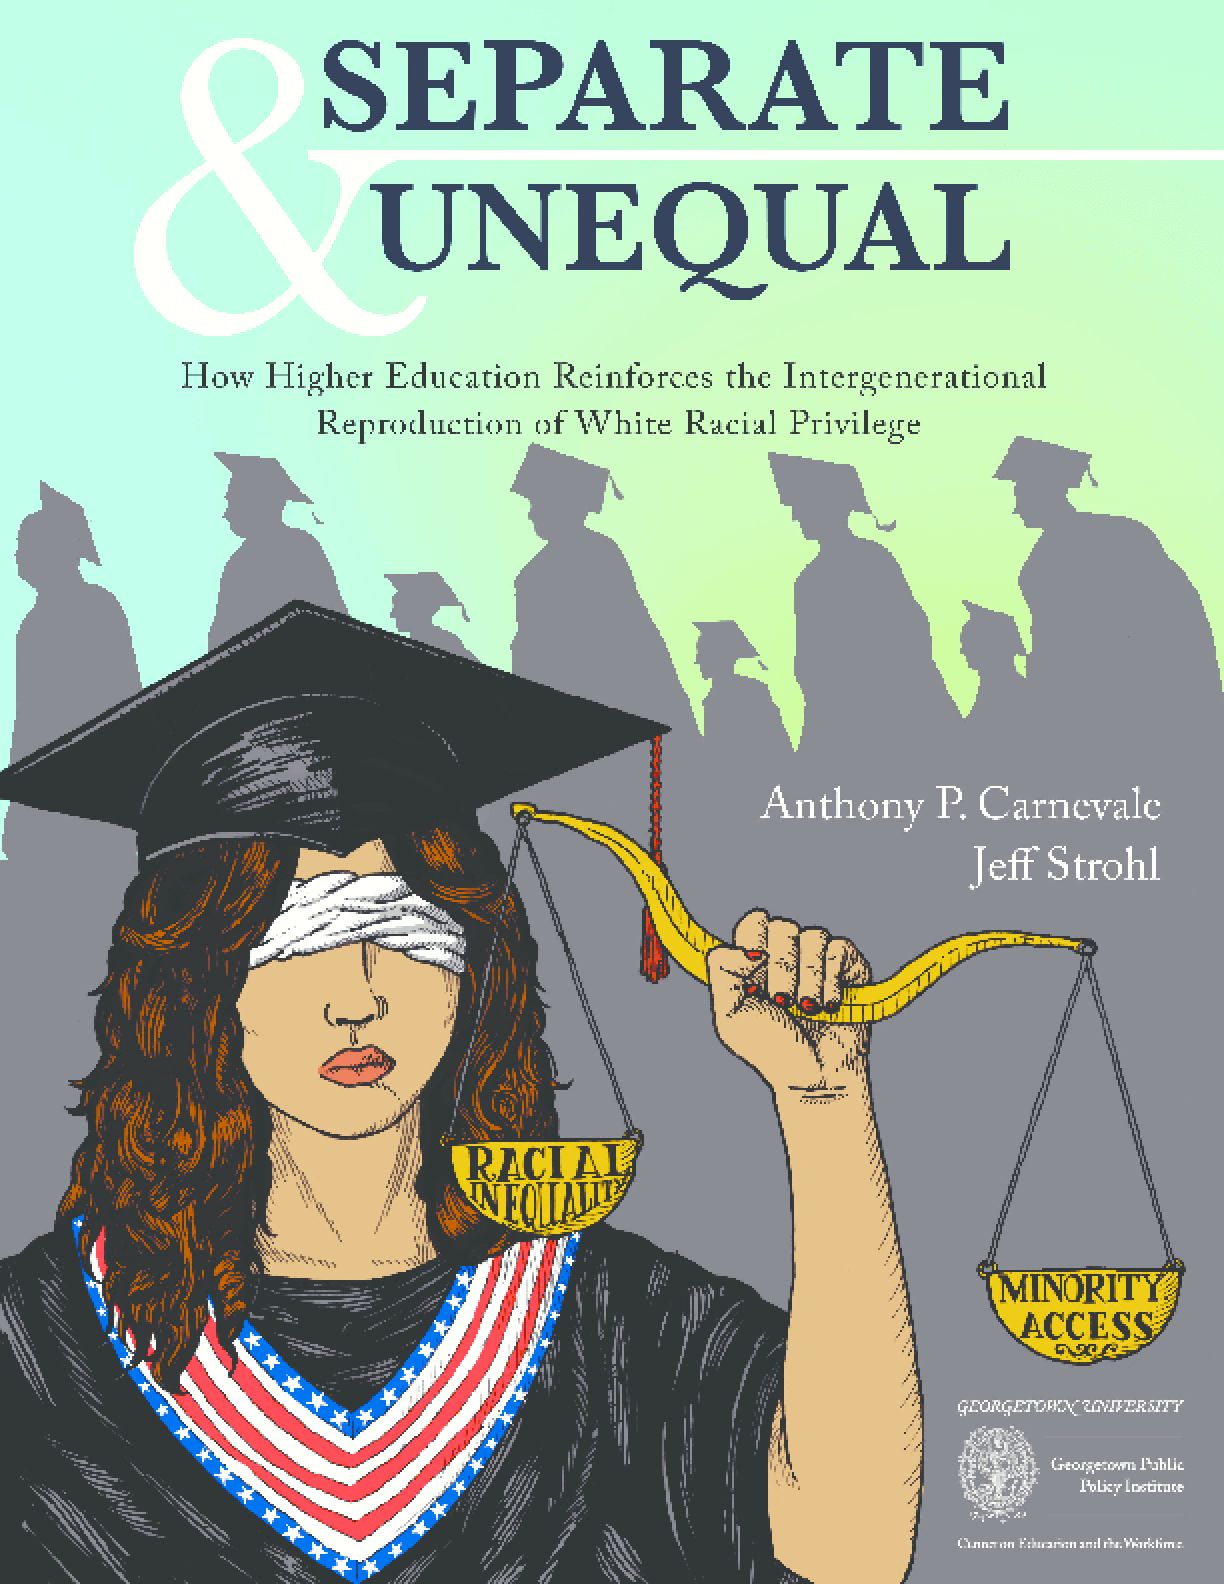 Separate & Unequal: How Higher Education Reinforces the Intergenerational Reproduction of White Racial Privilege